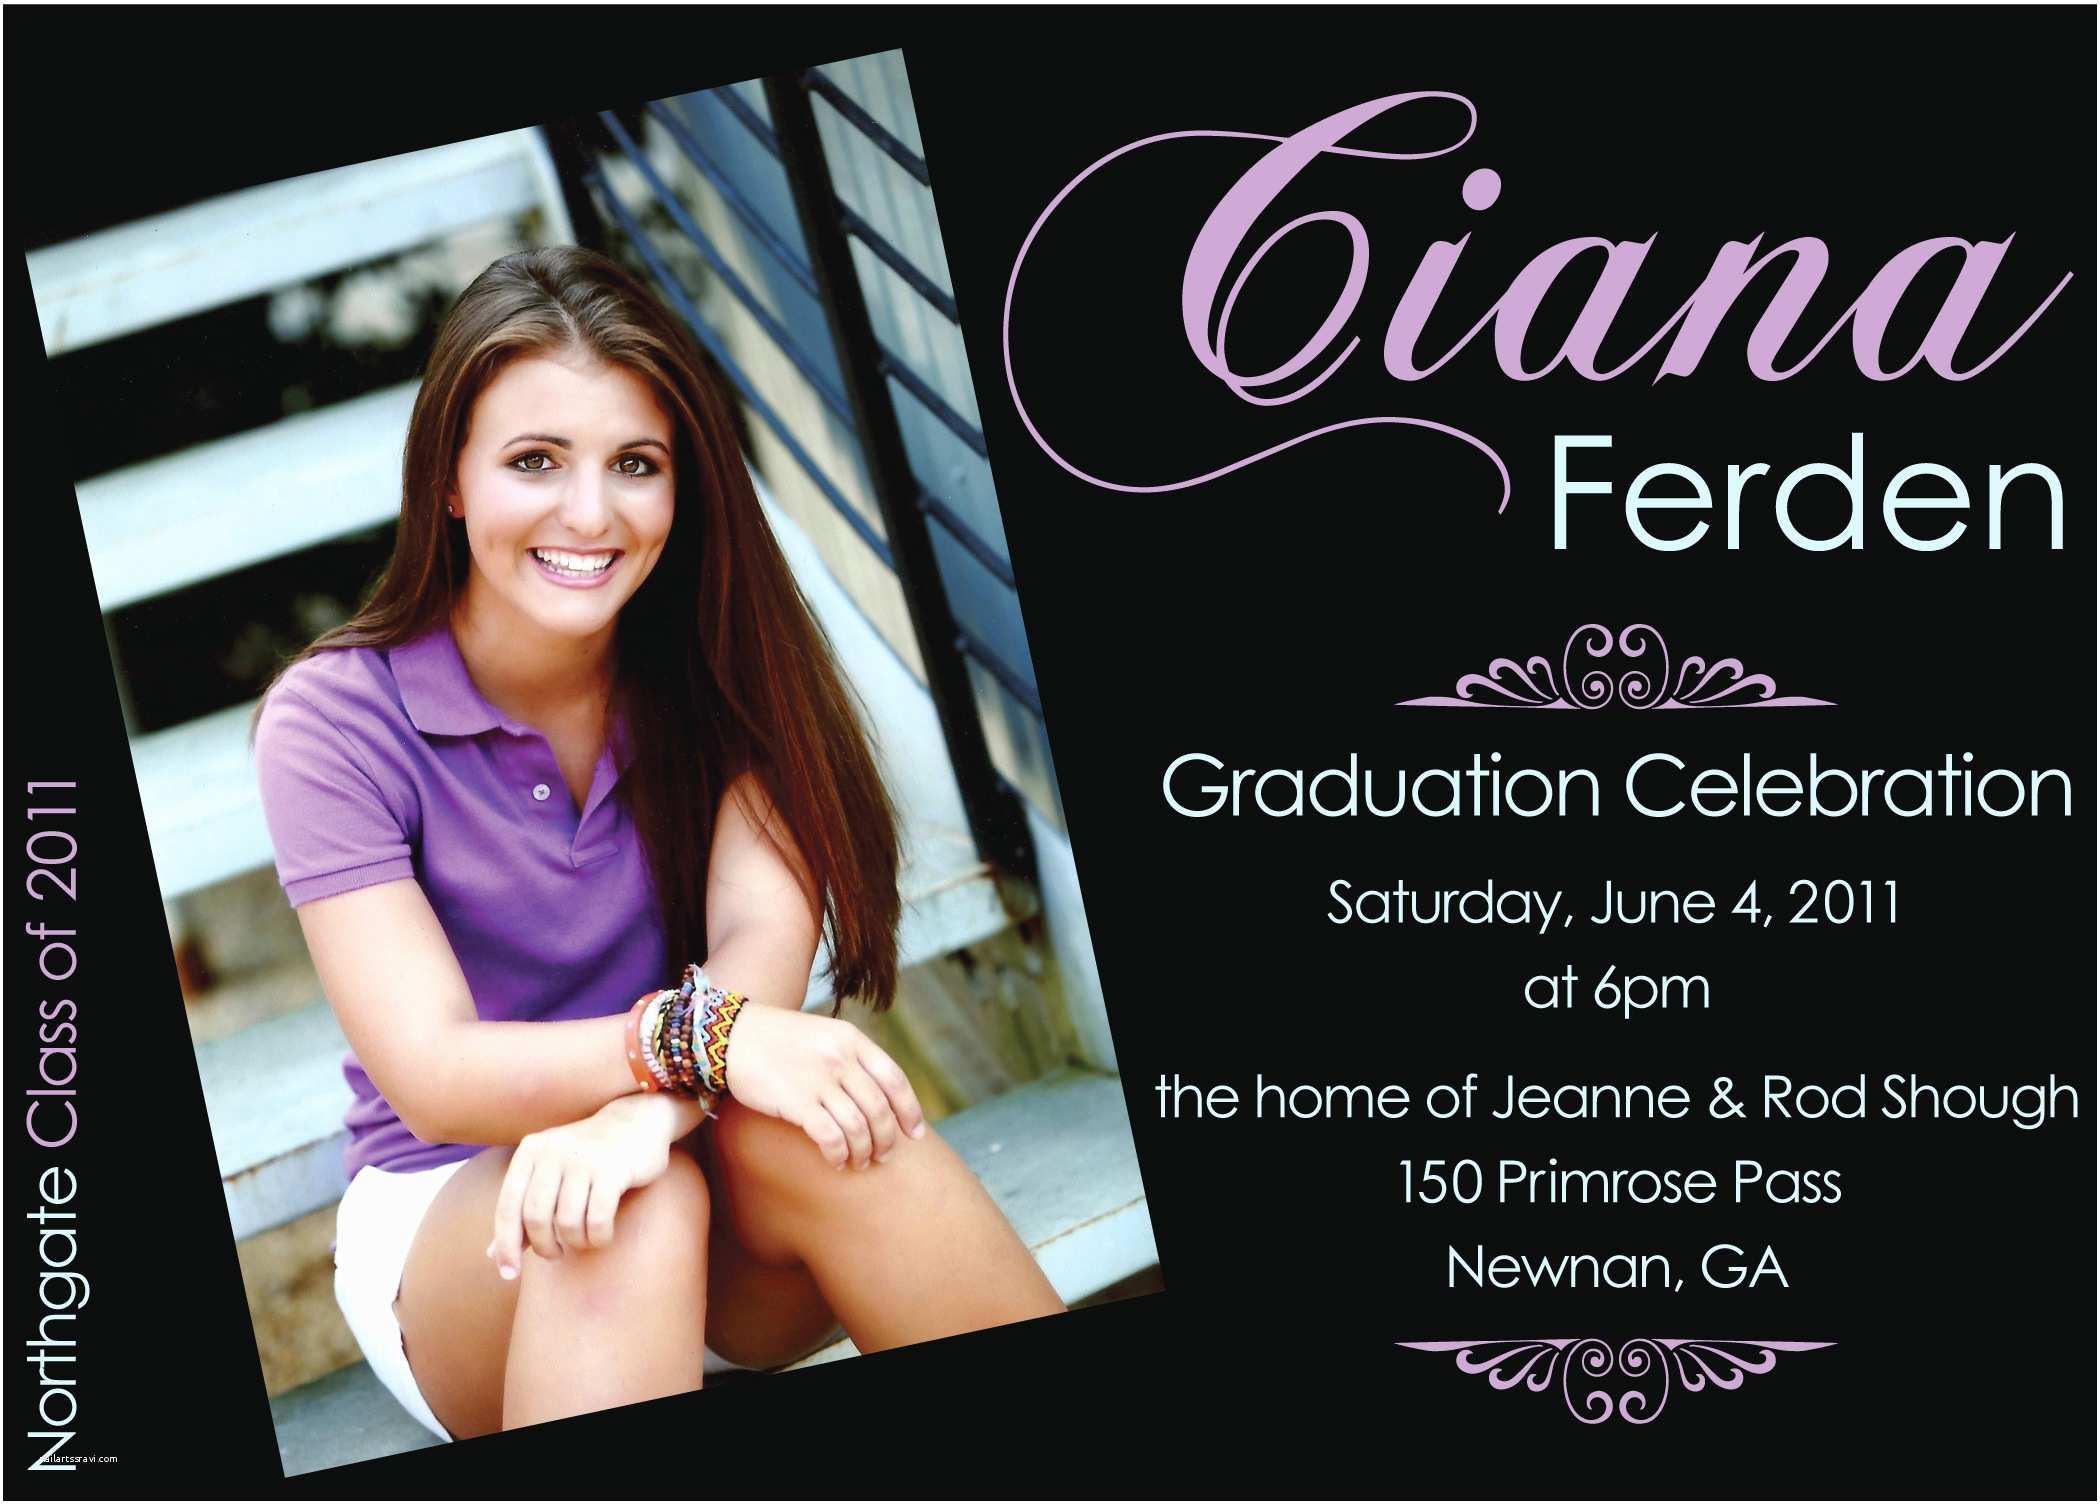 Graduation Party Invitations Templates Create Own Graduation Party Invitations Templates Free